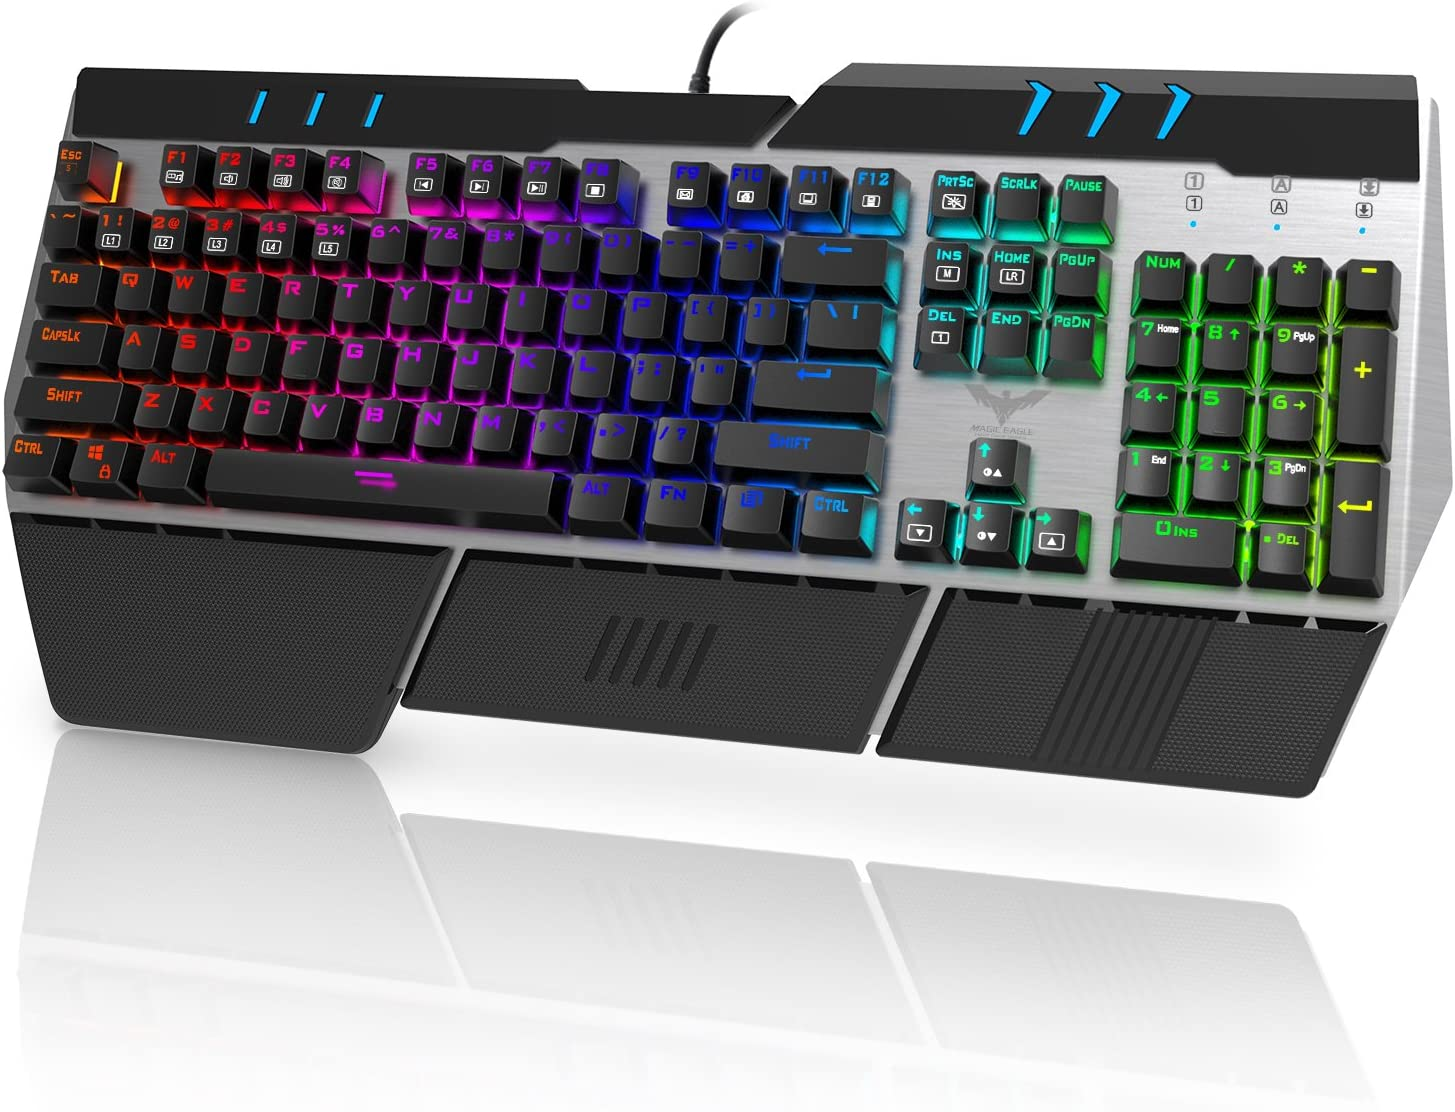 HAVIT RGB Backlit Wired Membrane Gaming Keyboard, Mechanical-Similar Typing/Gaming Experience (Black)